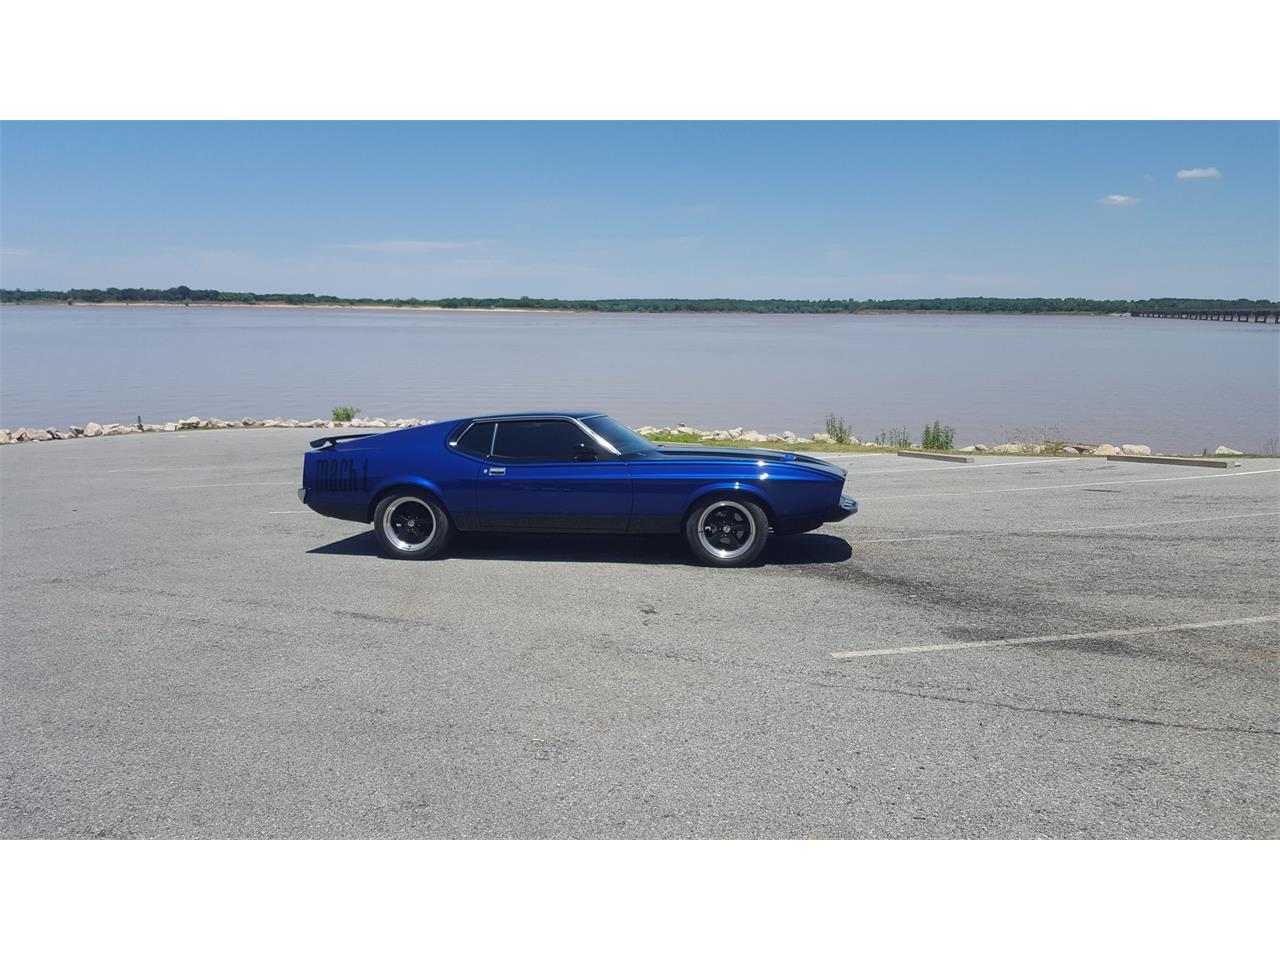 Large Picture of 1973 Mustang Mach 1 located in Texas - $45,000.00 Offered by a Private Seller - LBYV